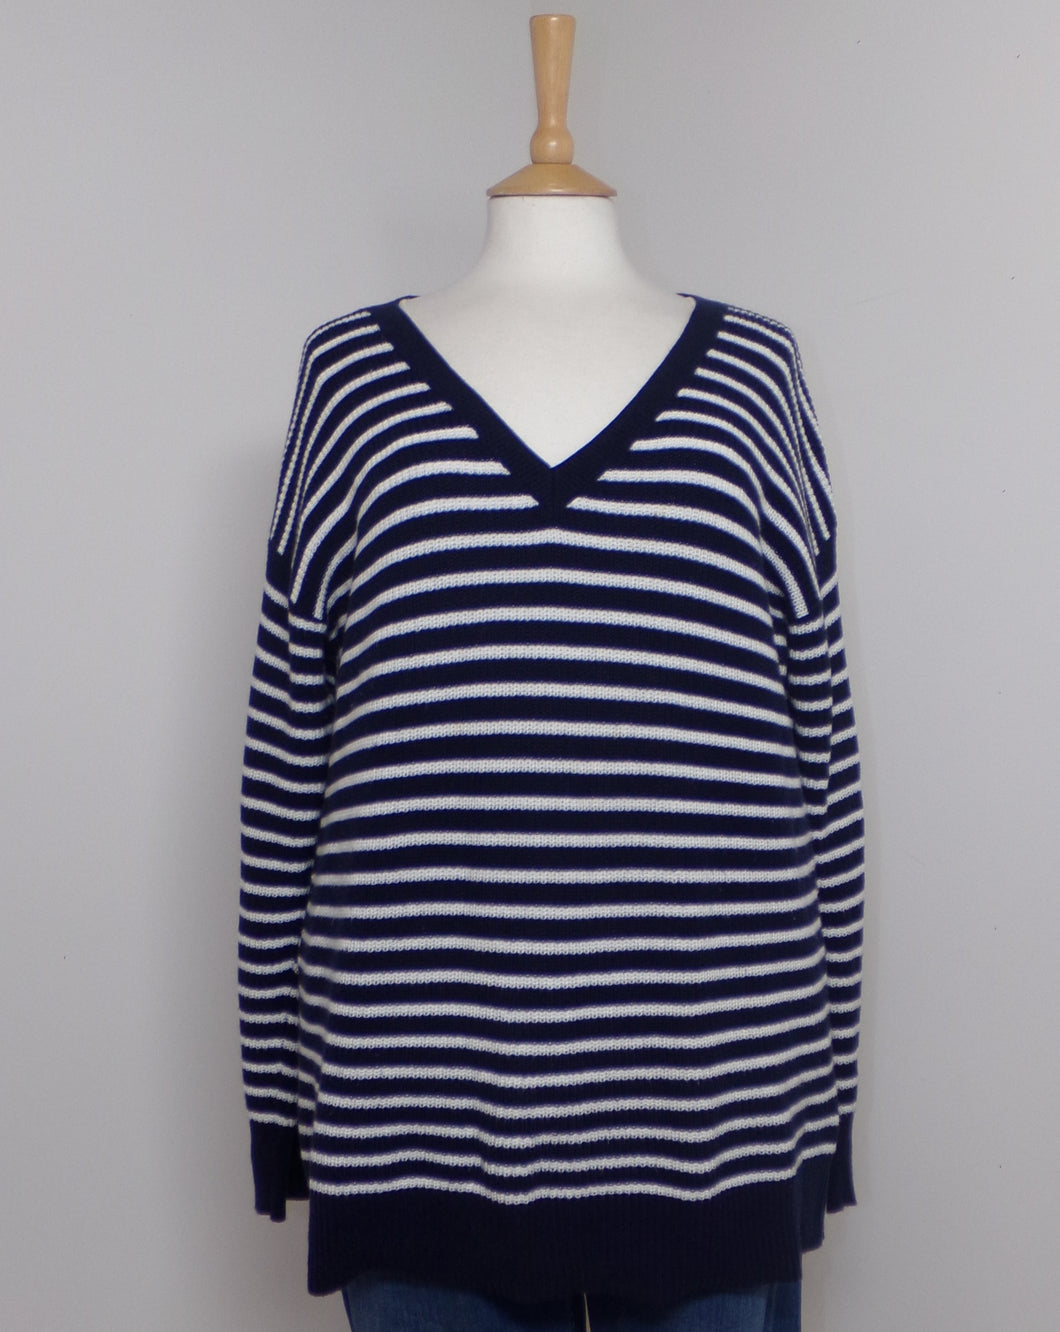 This jumper with its classic lines is a staple wardrobe choice from Gap. Extended hem line which is complemented by its cuff and v neck. A cosy ally to your down time, looks great with jeans, for that smart yet casual look.